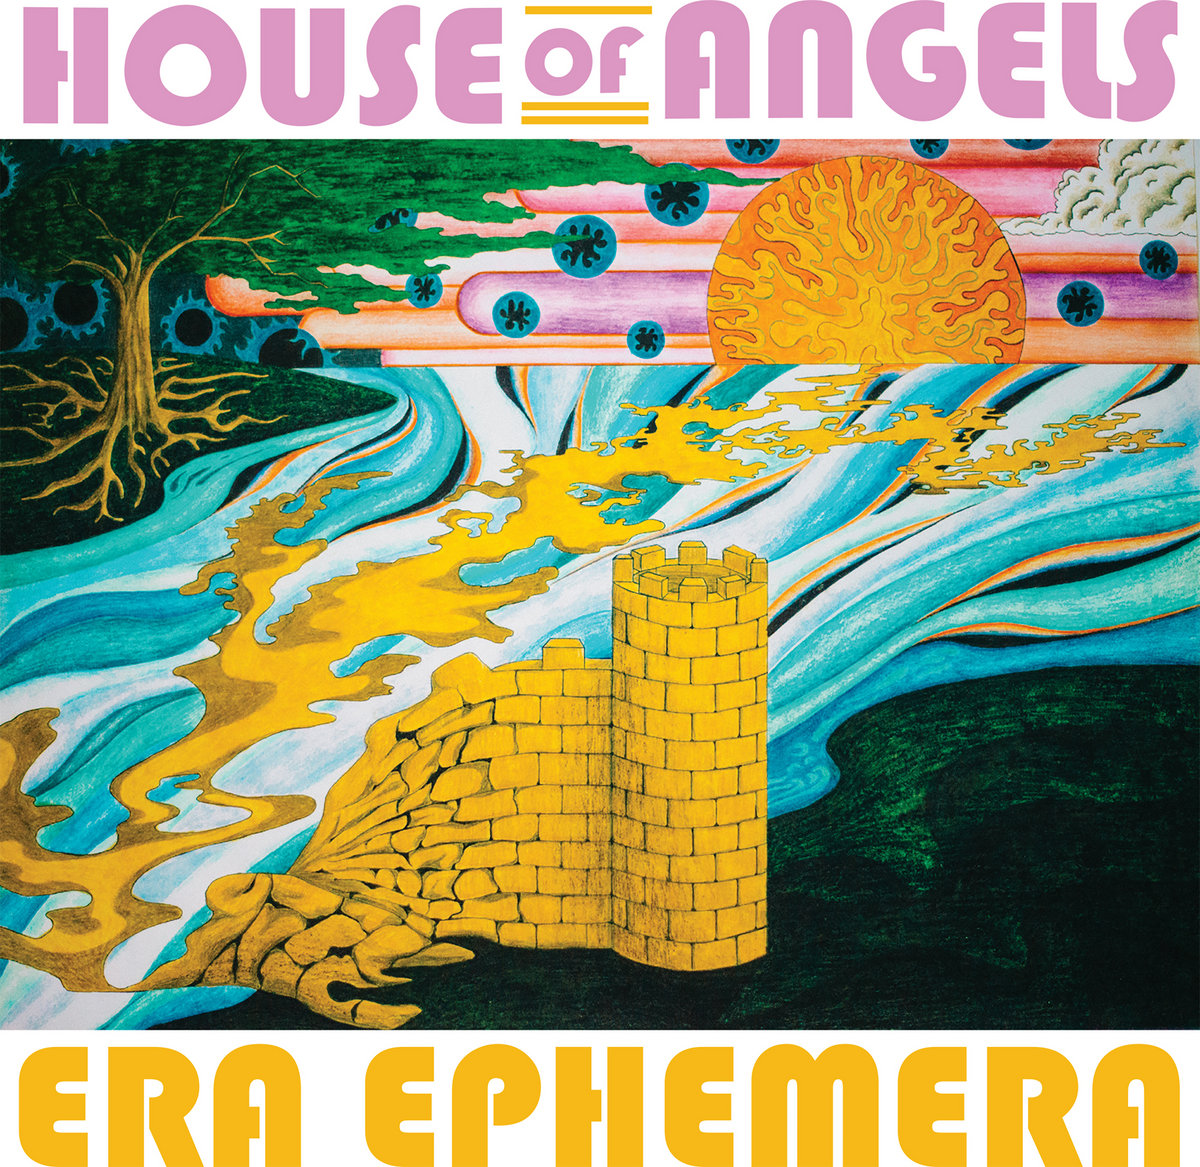 House of Angels LP art